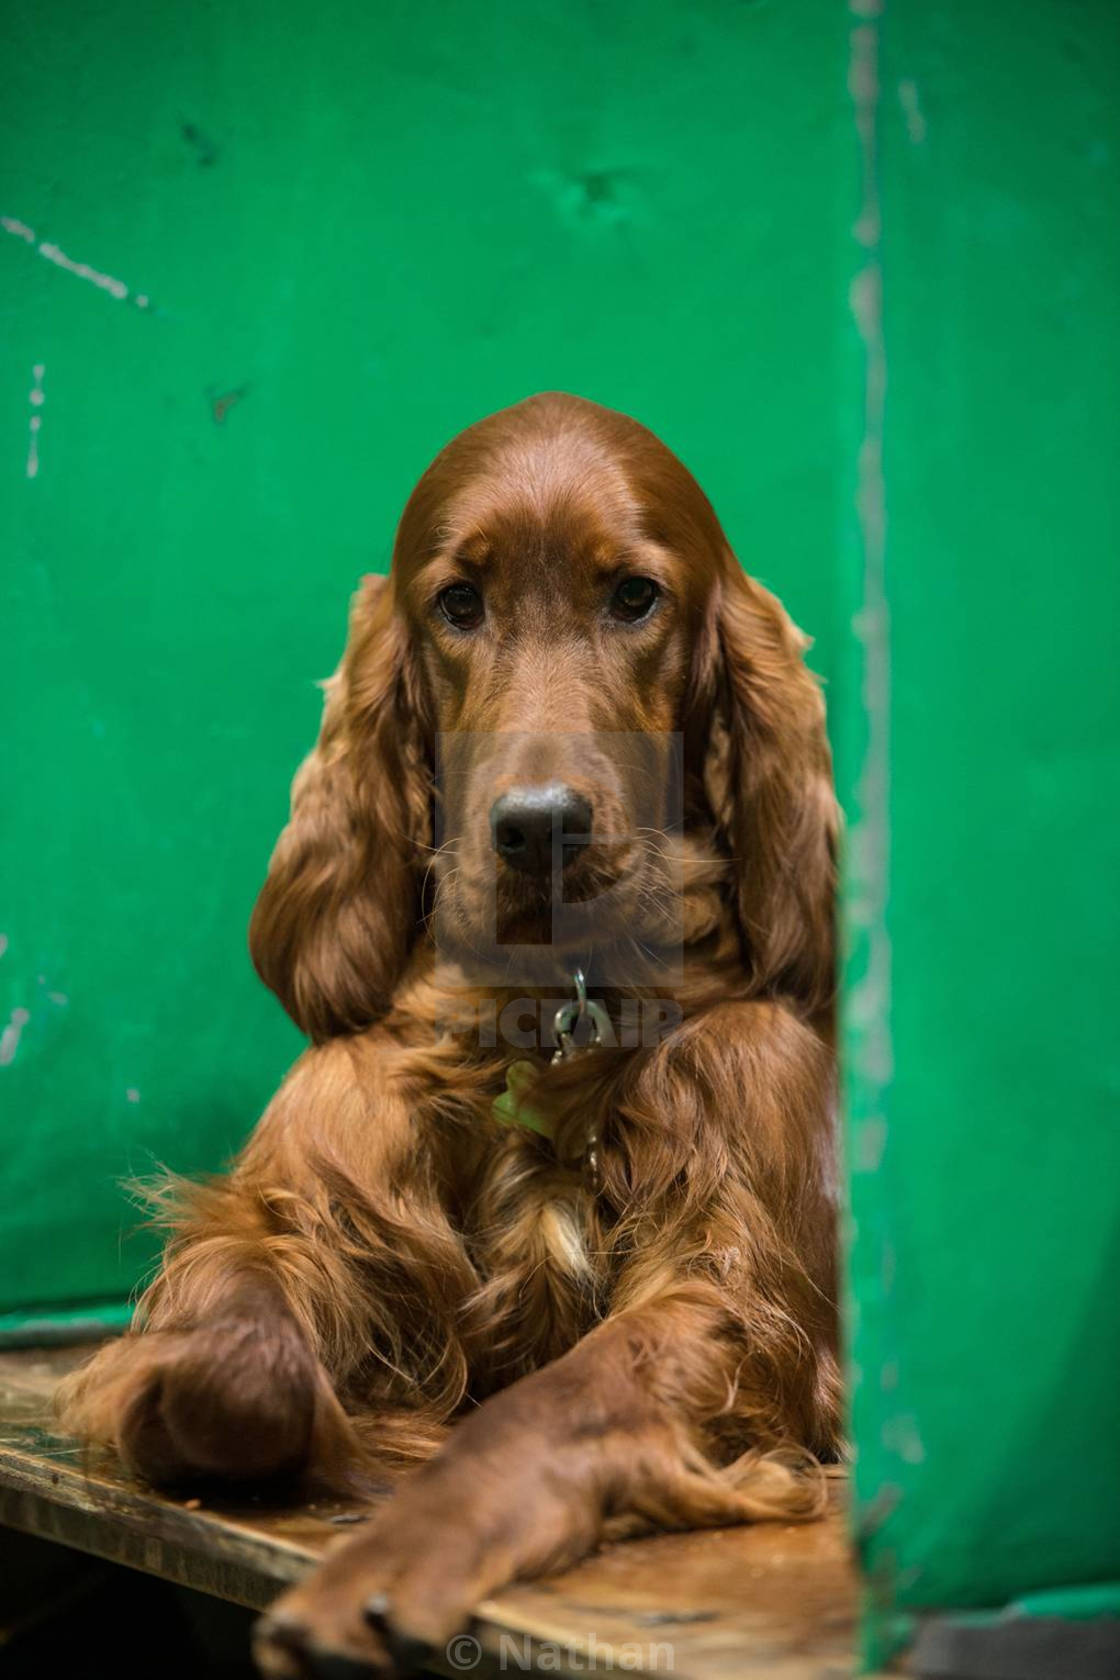 Crufts 2019  - License, download or print for £10 54